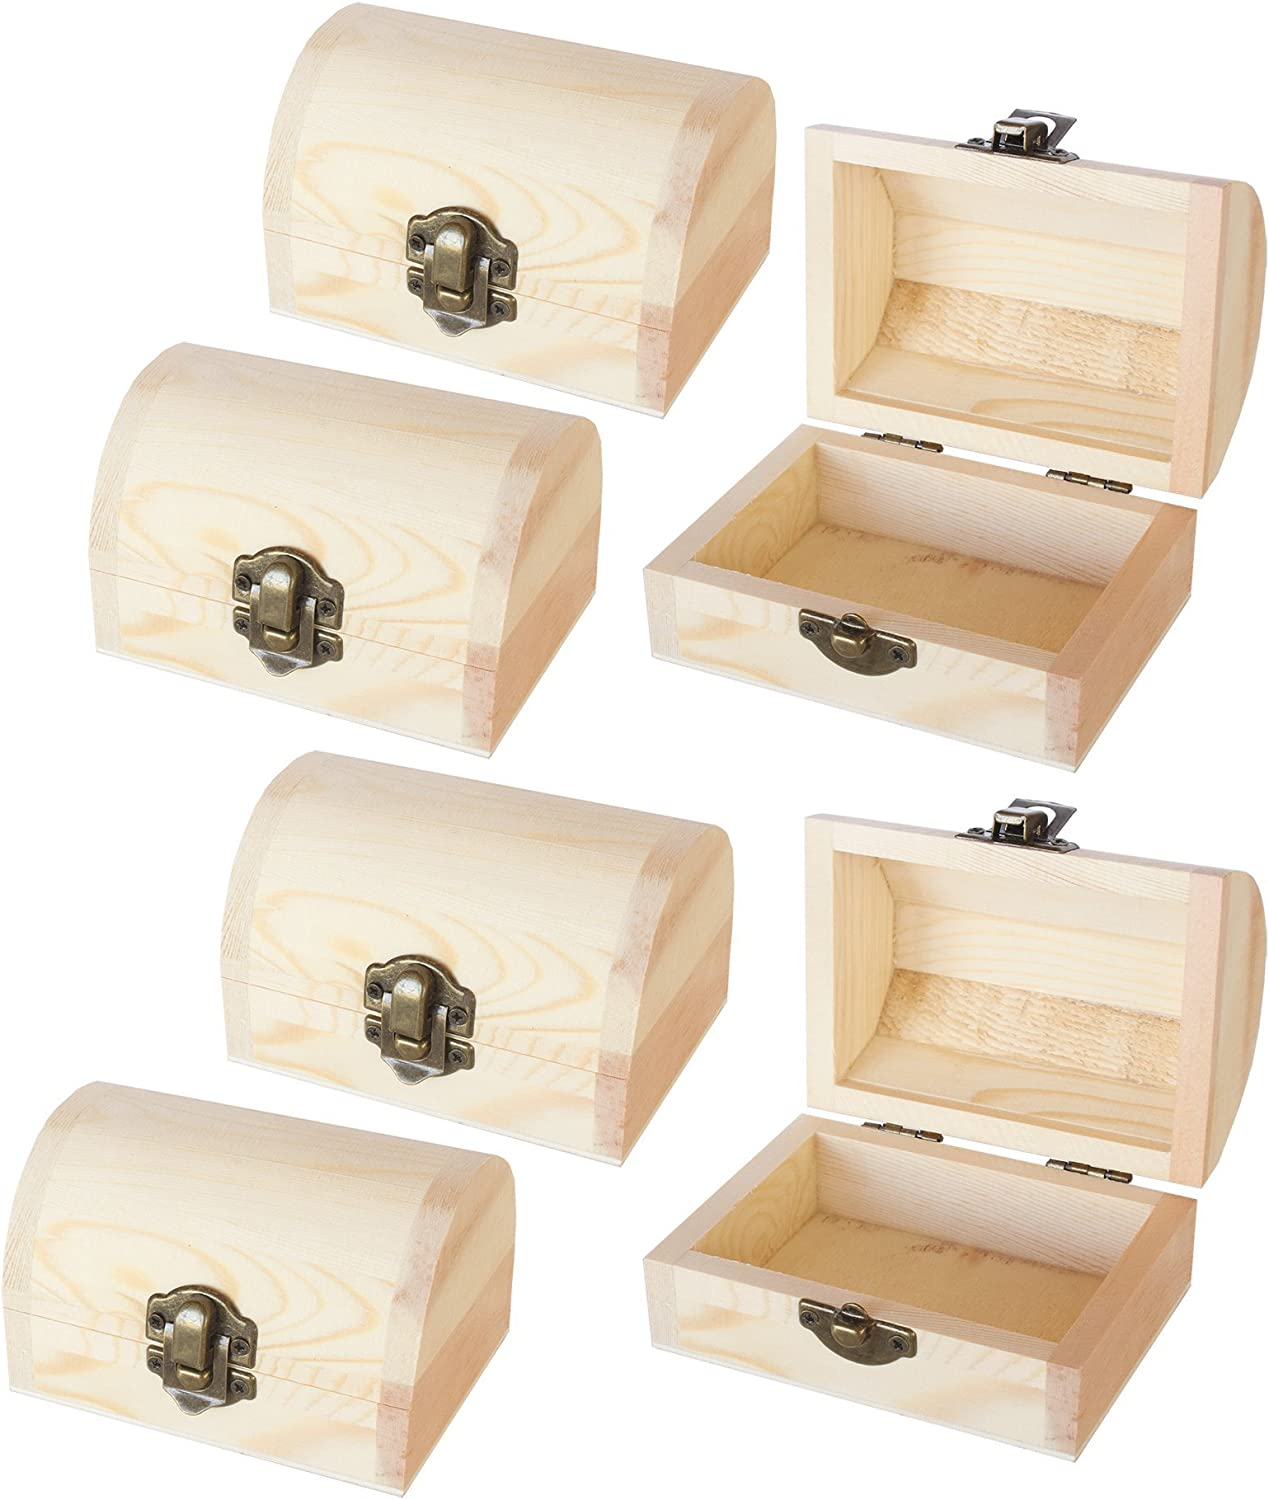 Unfinished Wooden Treasure Chest (2.76 x 3.9 x 2.36 Inches, 6-Pack)